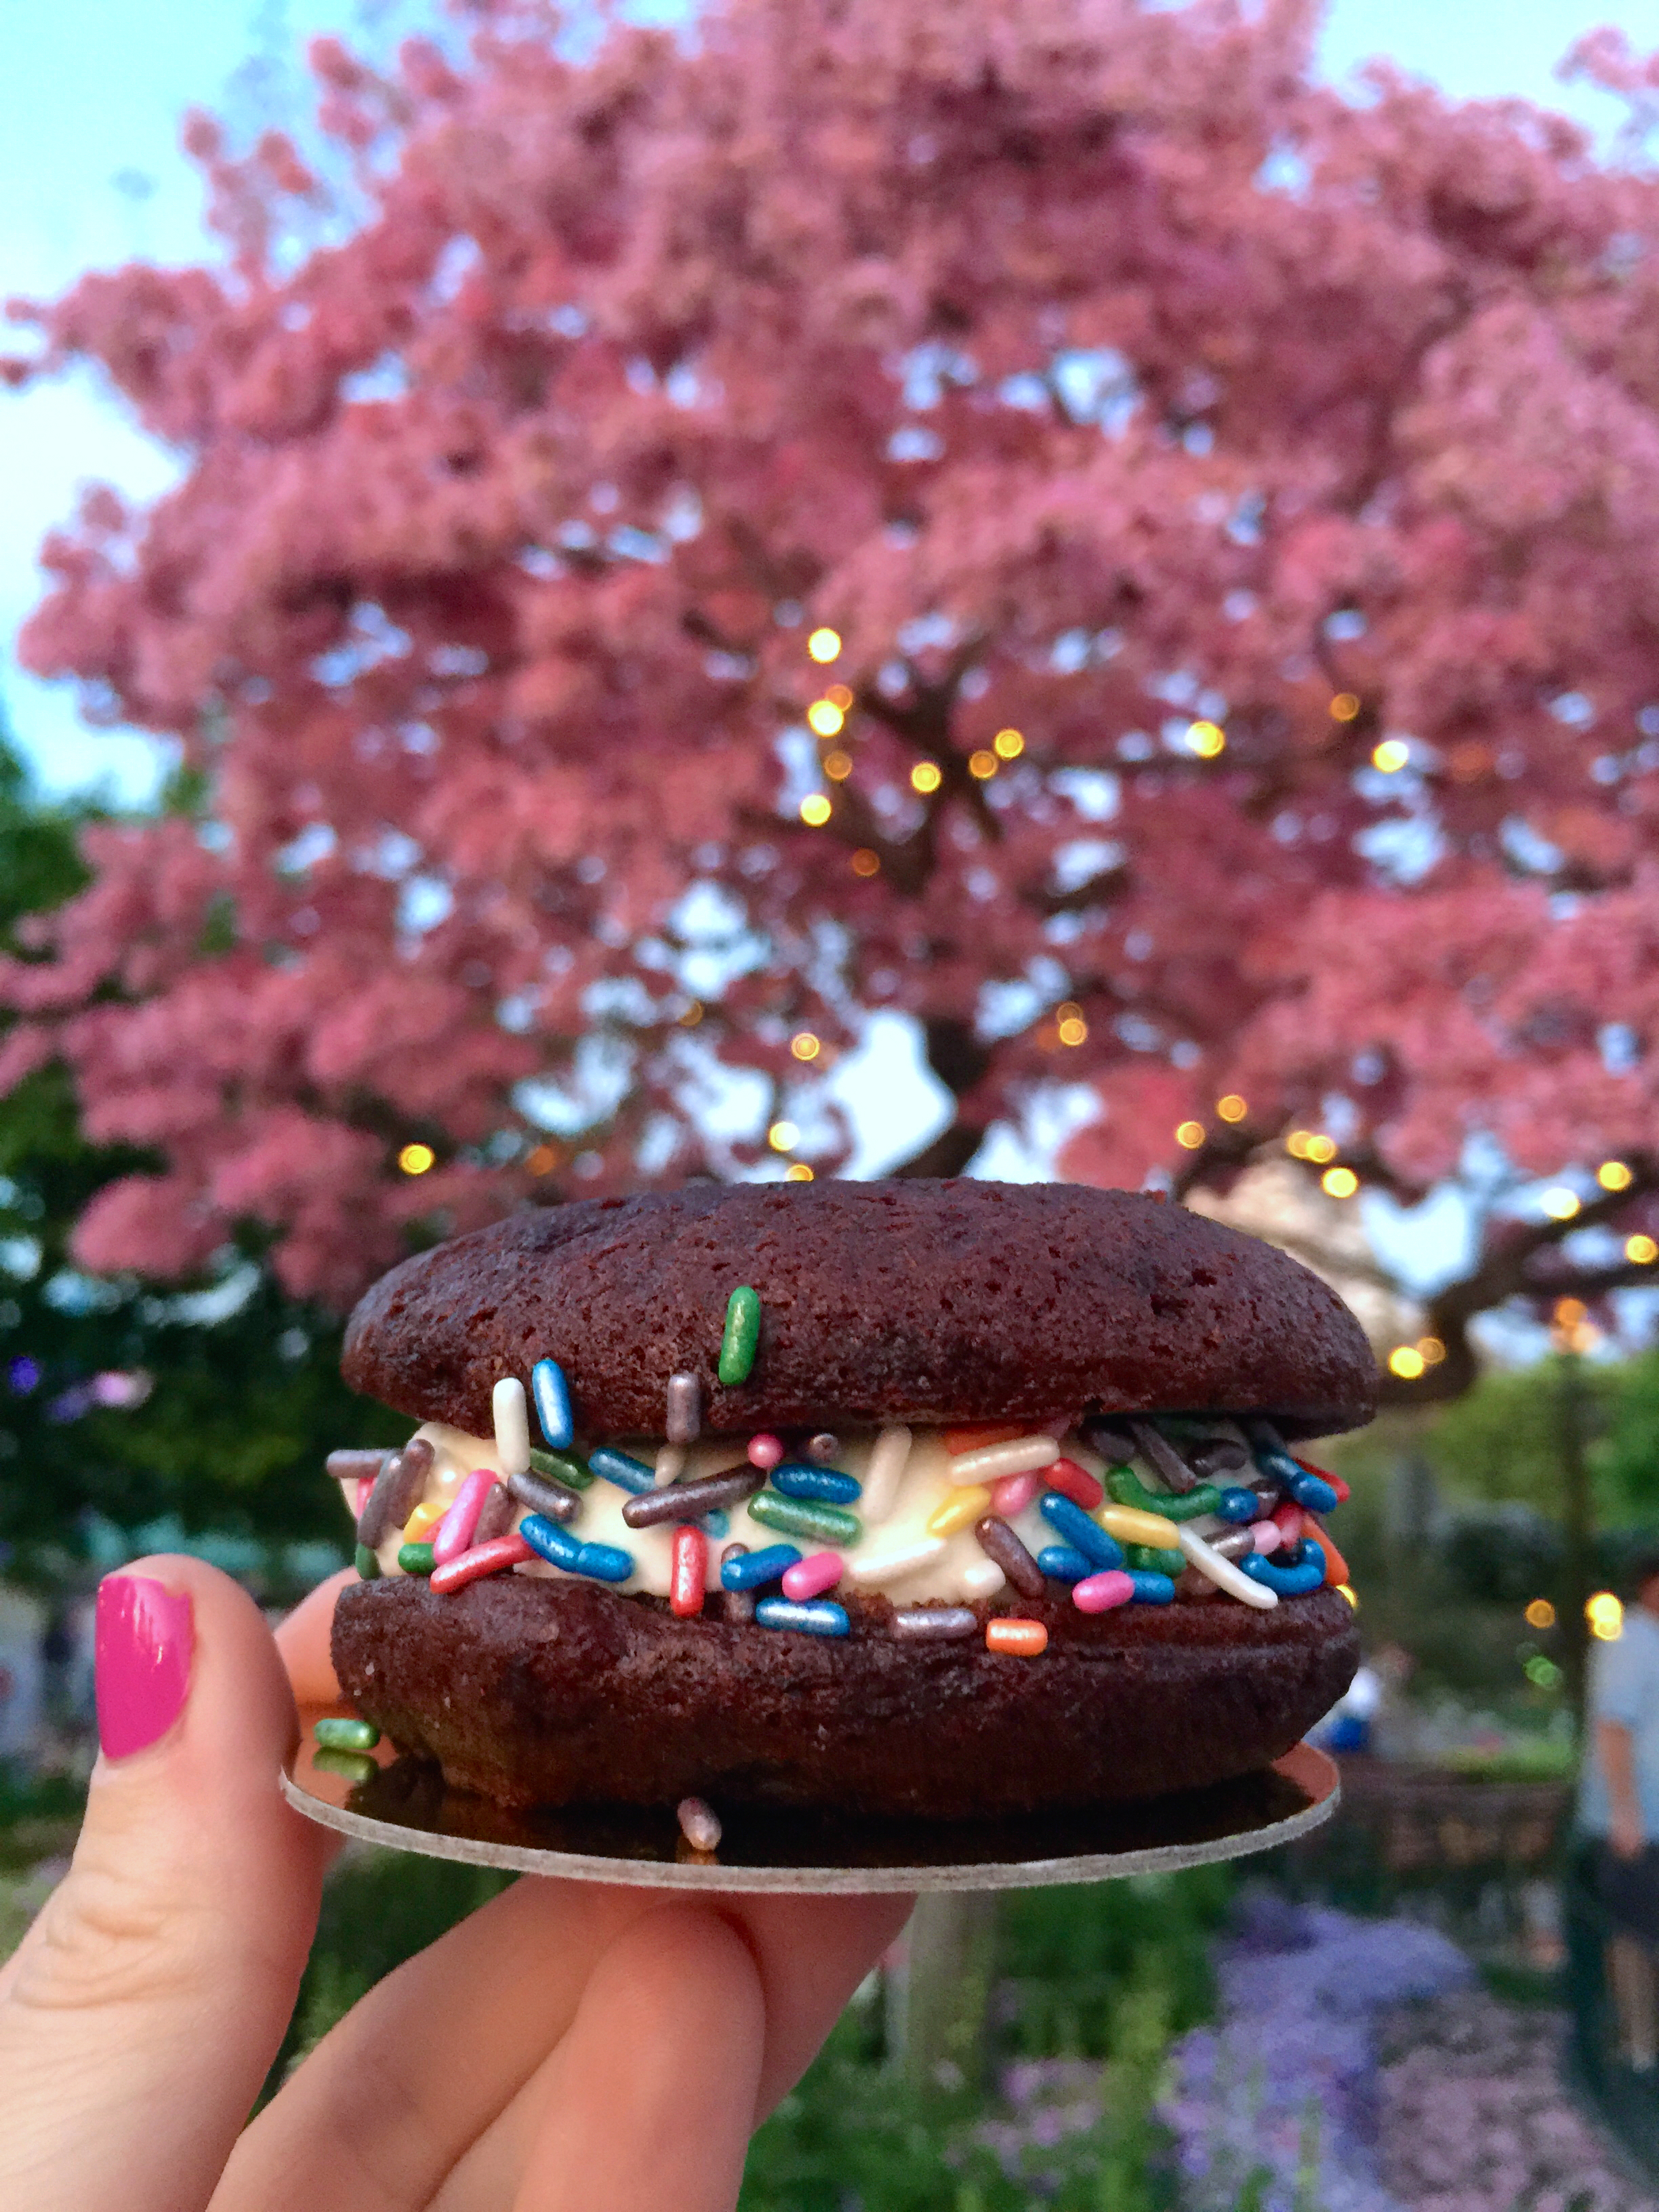 White Chocolate Whoopie Pie from Jolly Holiday Bakery Cafe